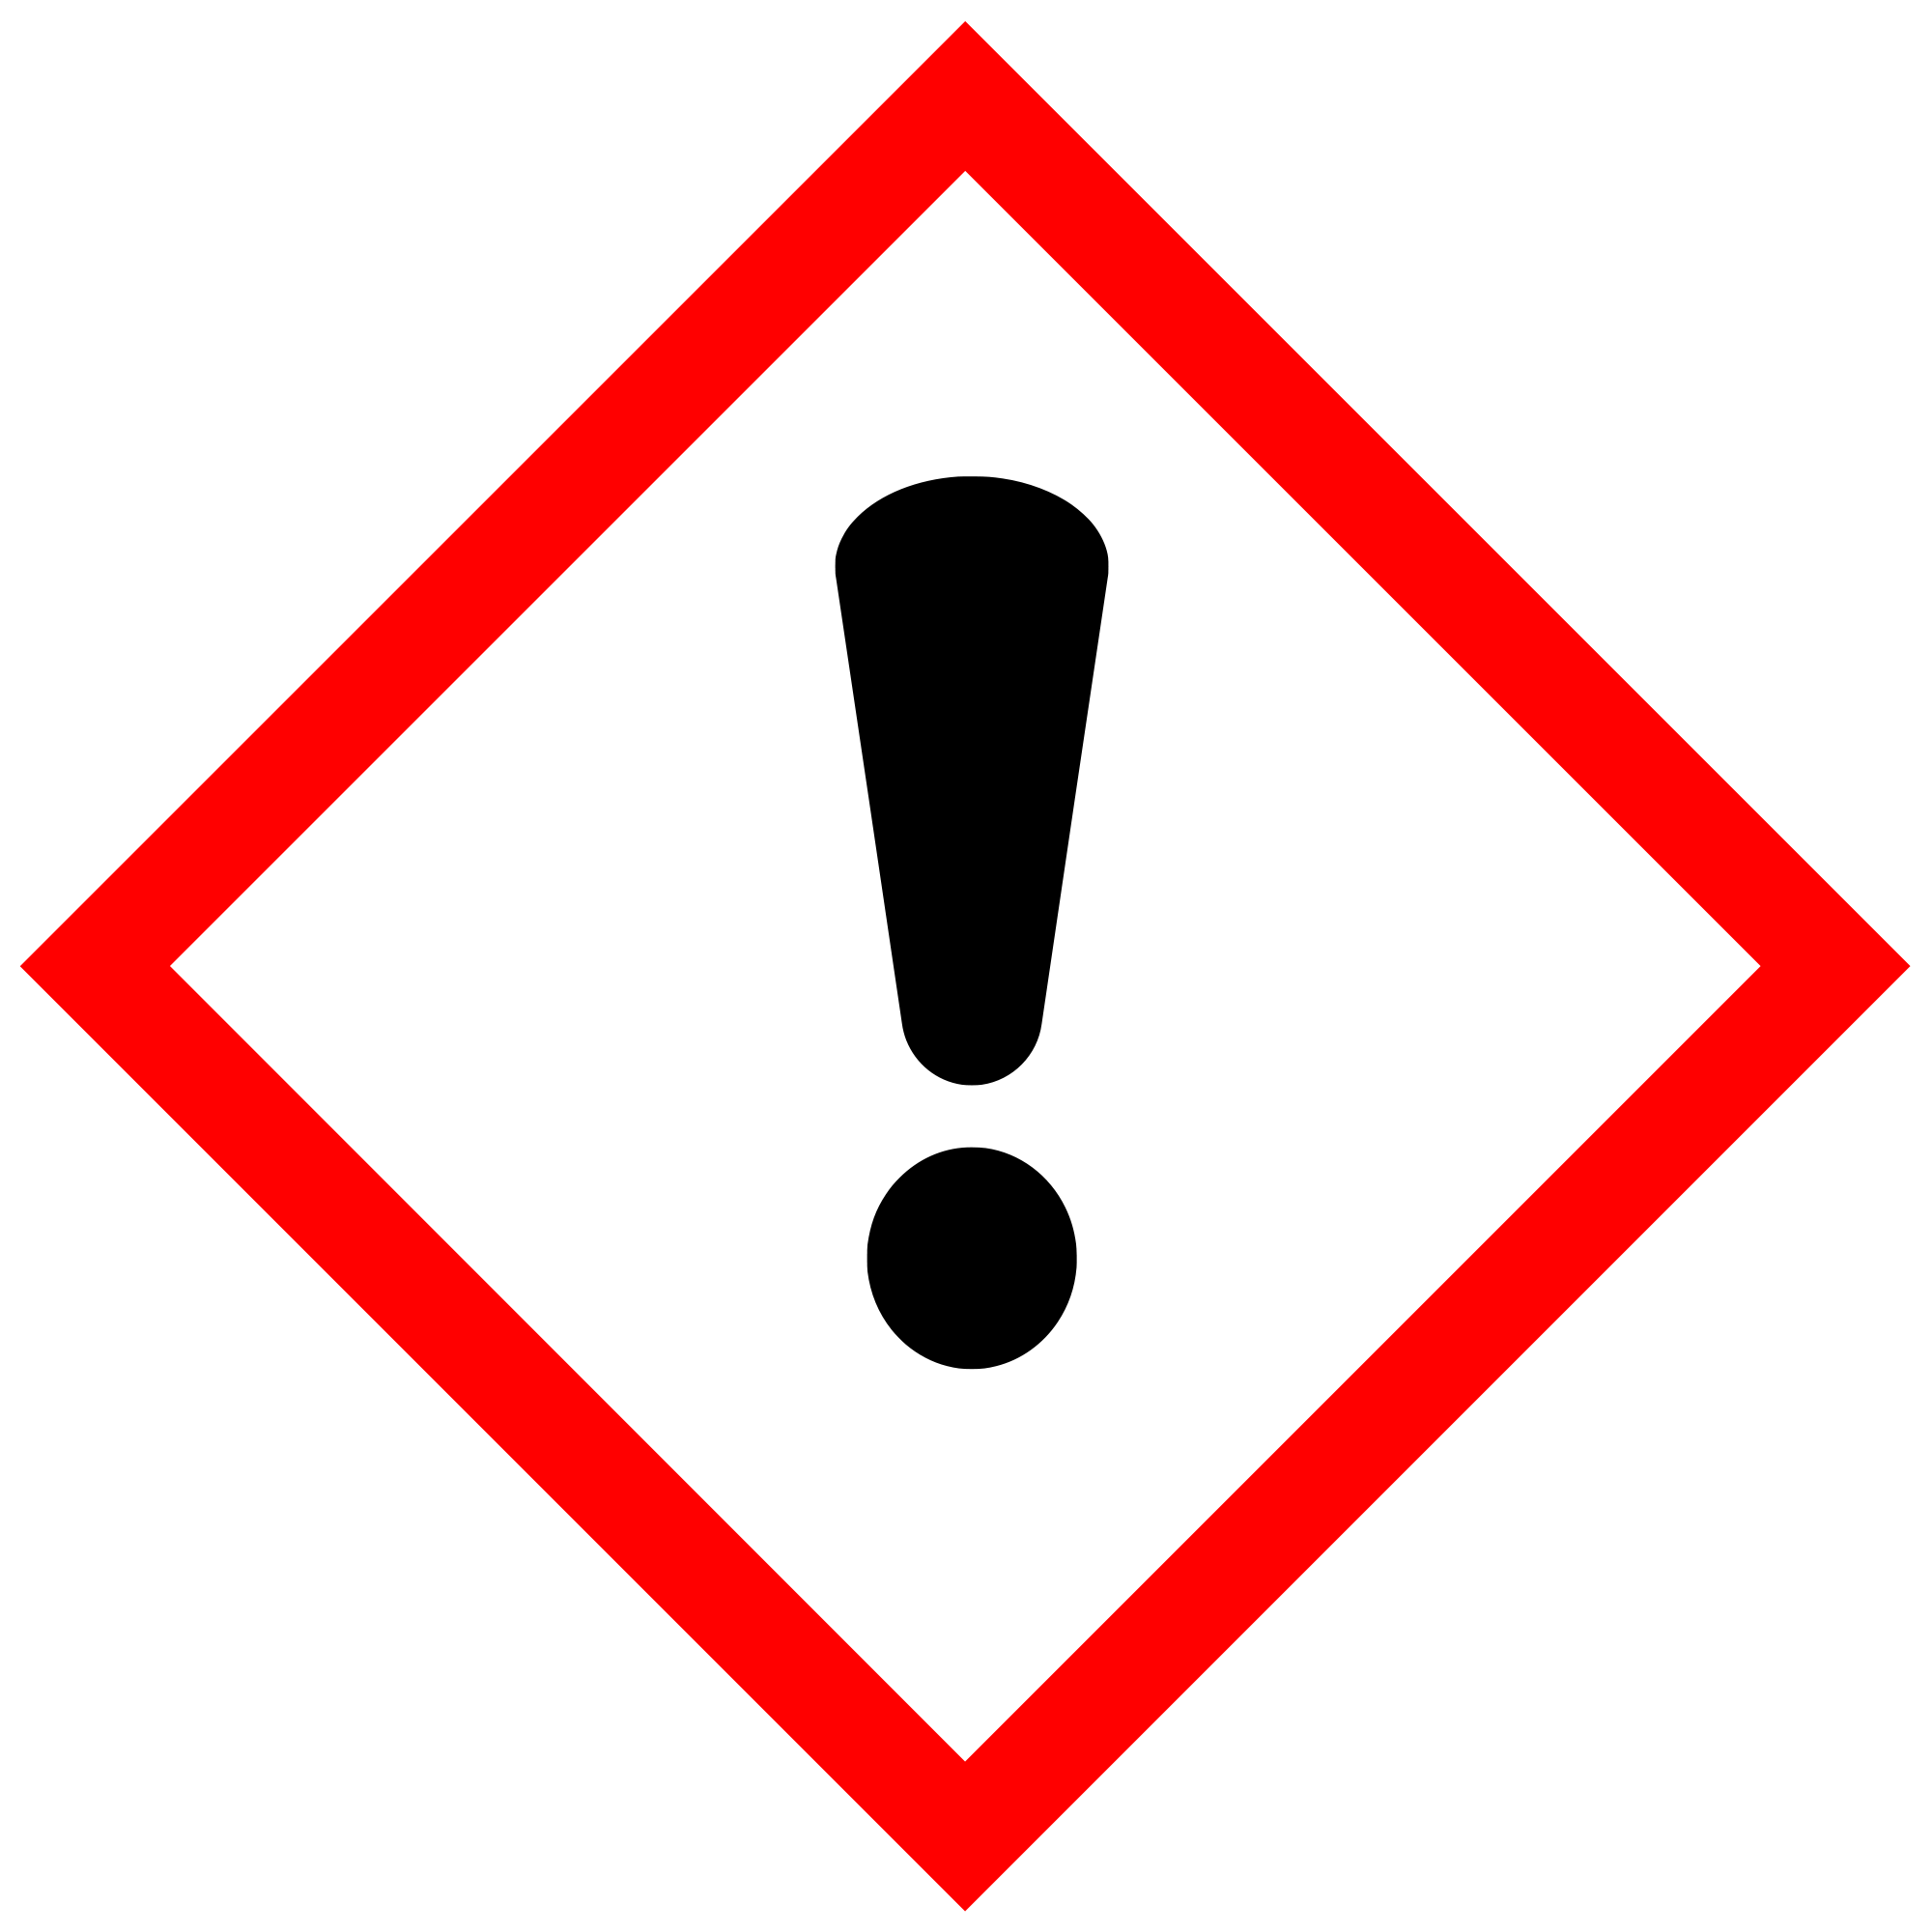 2000px-GHS-pictogram-exclam-svg.png